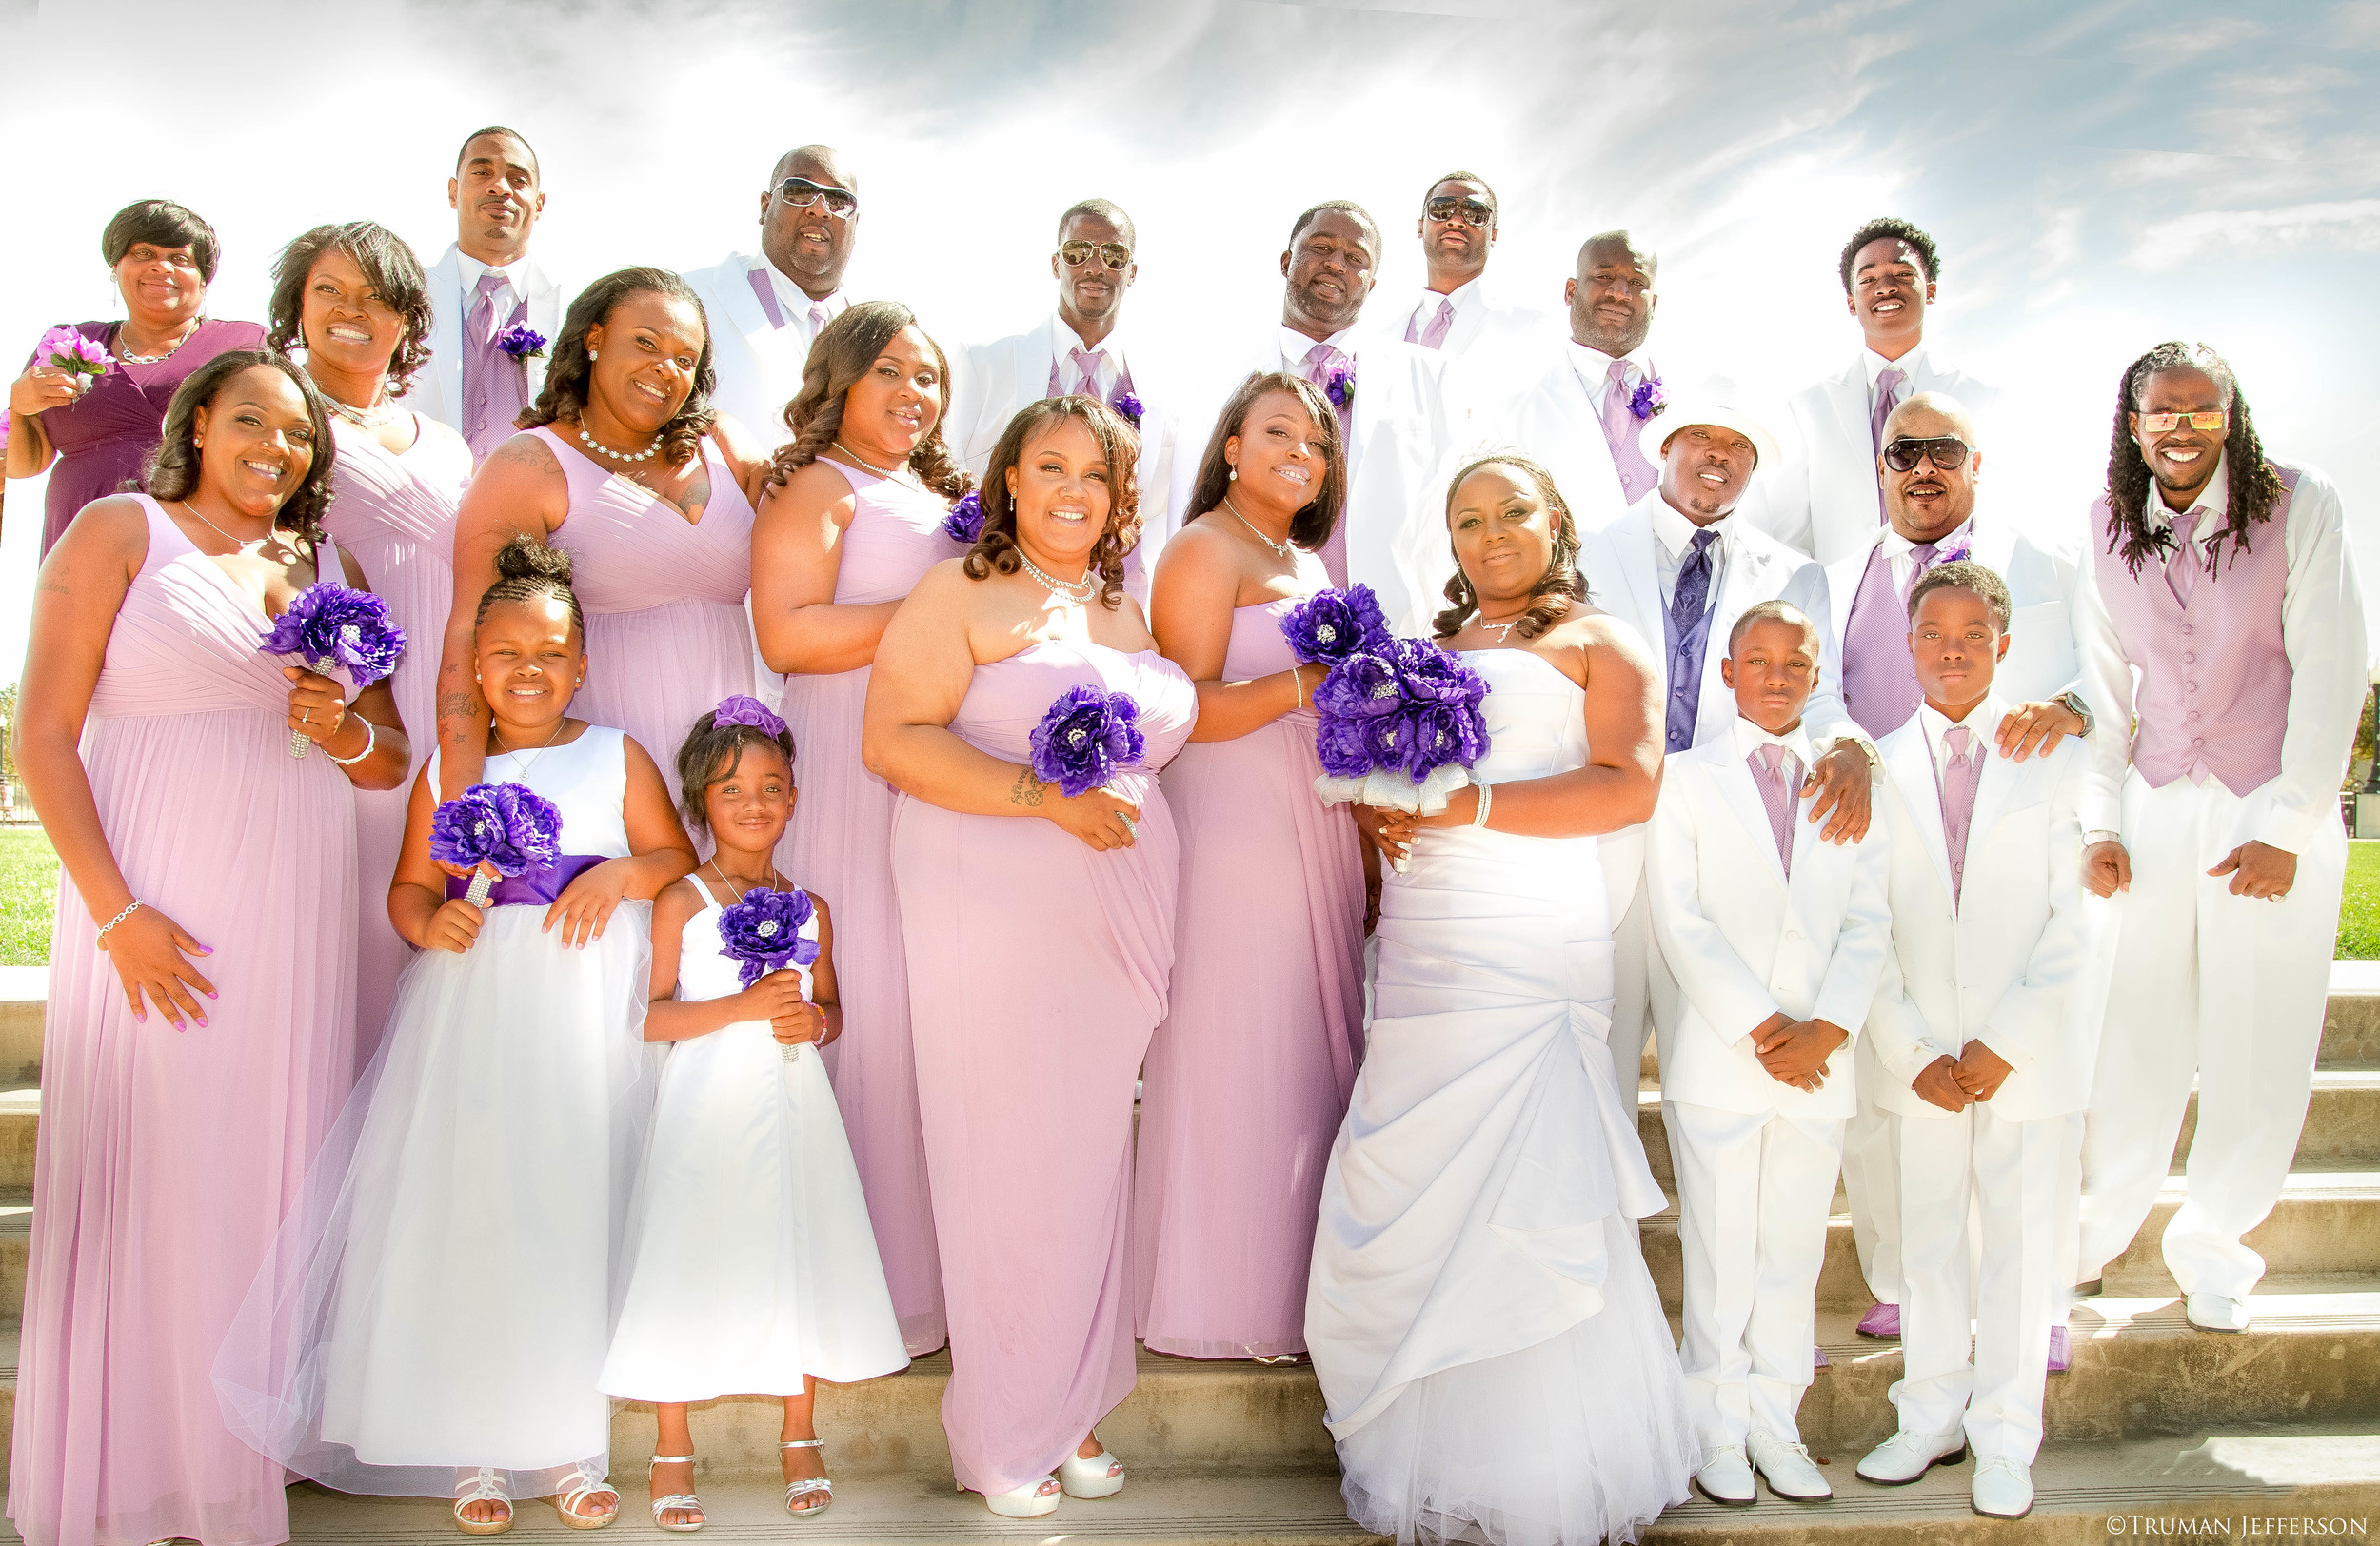 Preview+of+Tommia+&+Maurice+McHenry's+Vow+Renewal+Ceremony---Shot+by+@big_tru+---Truman+Jefferson.jpeg